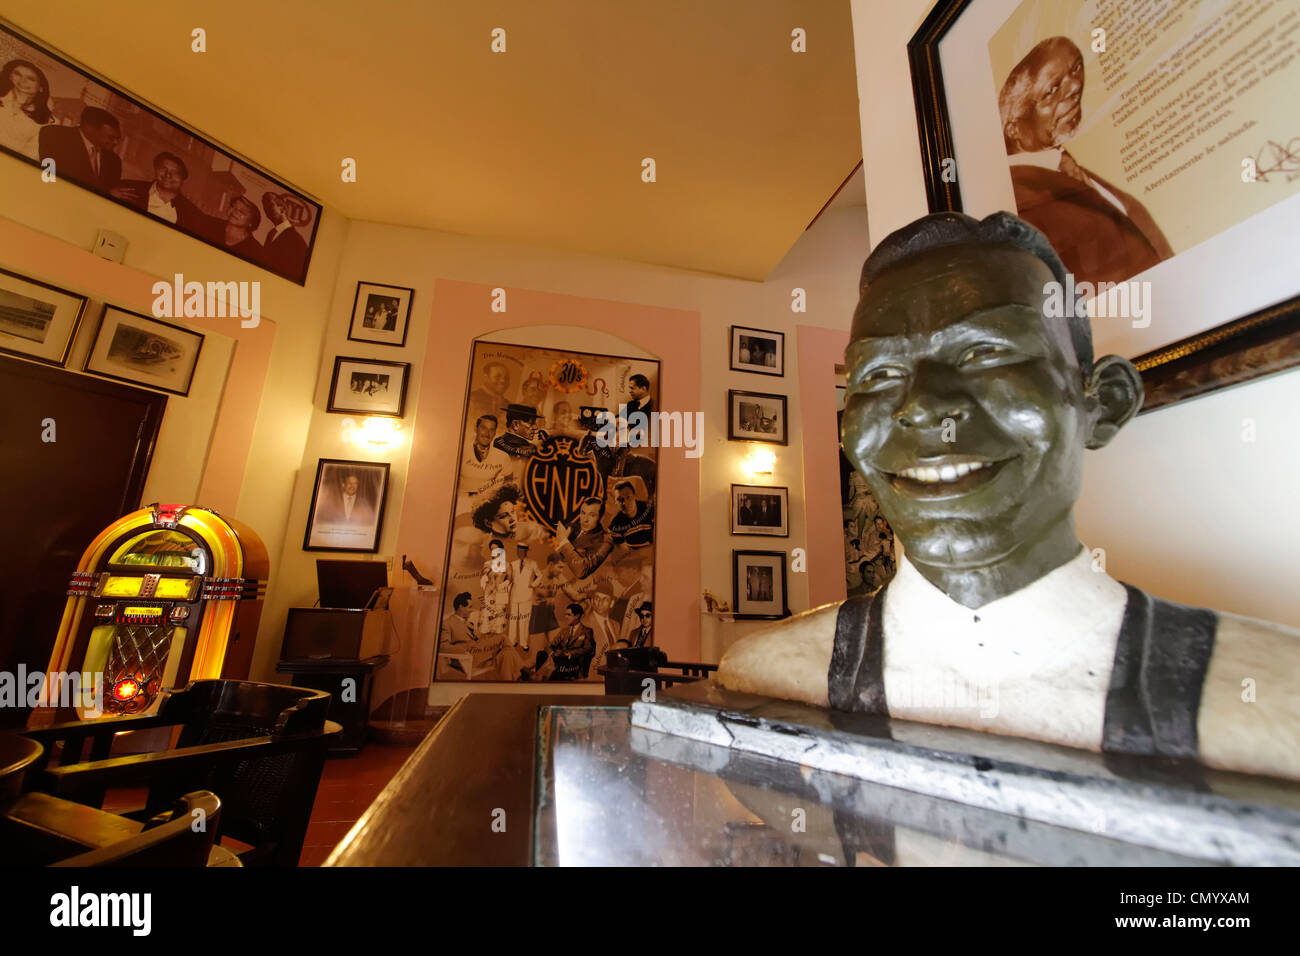 Hotel National Vedado, famous Bar, Nat King Cole Statue, Cuba, Greater Antilles, Antilles, Carribean, West Indies, - Stock Image